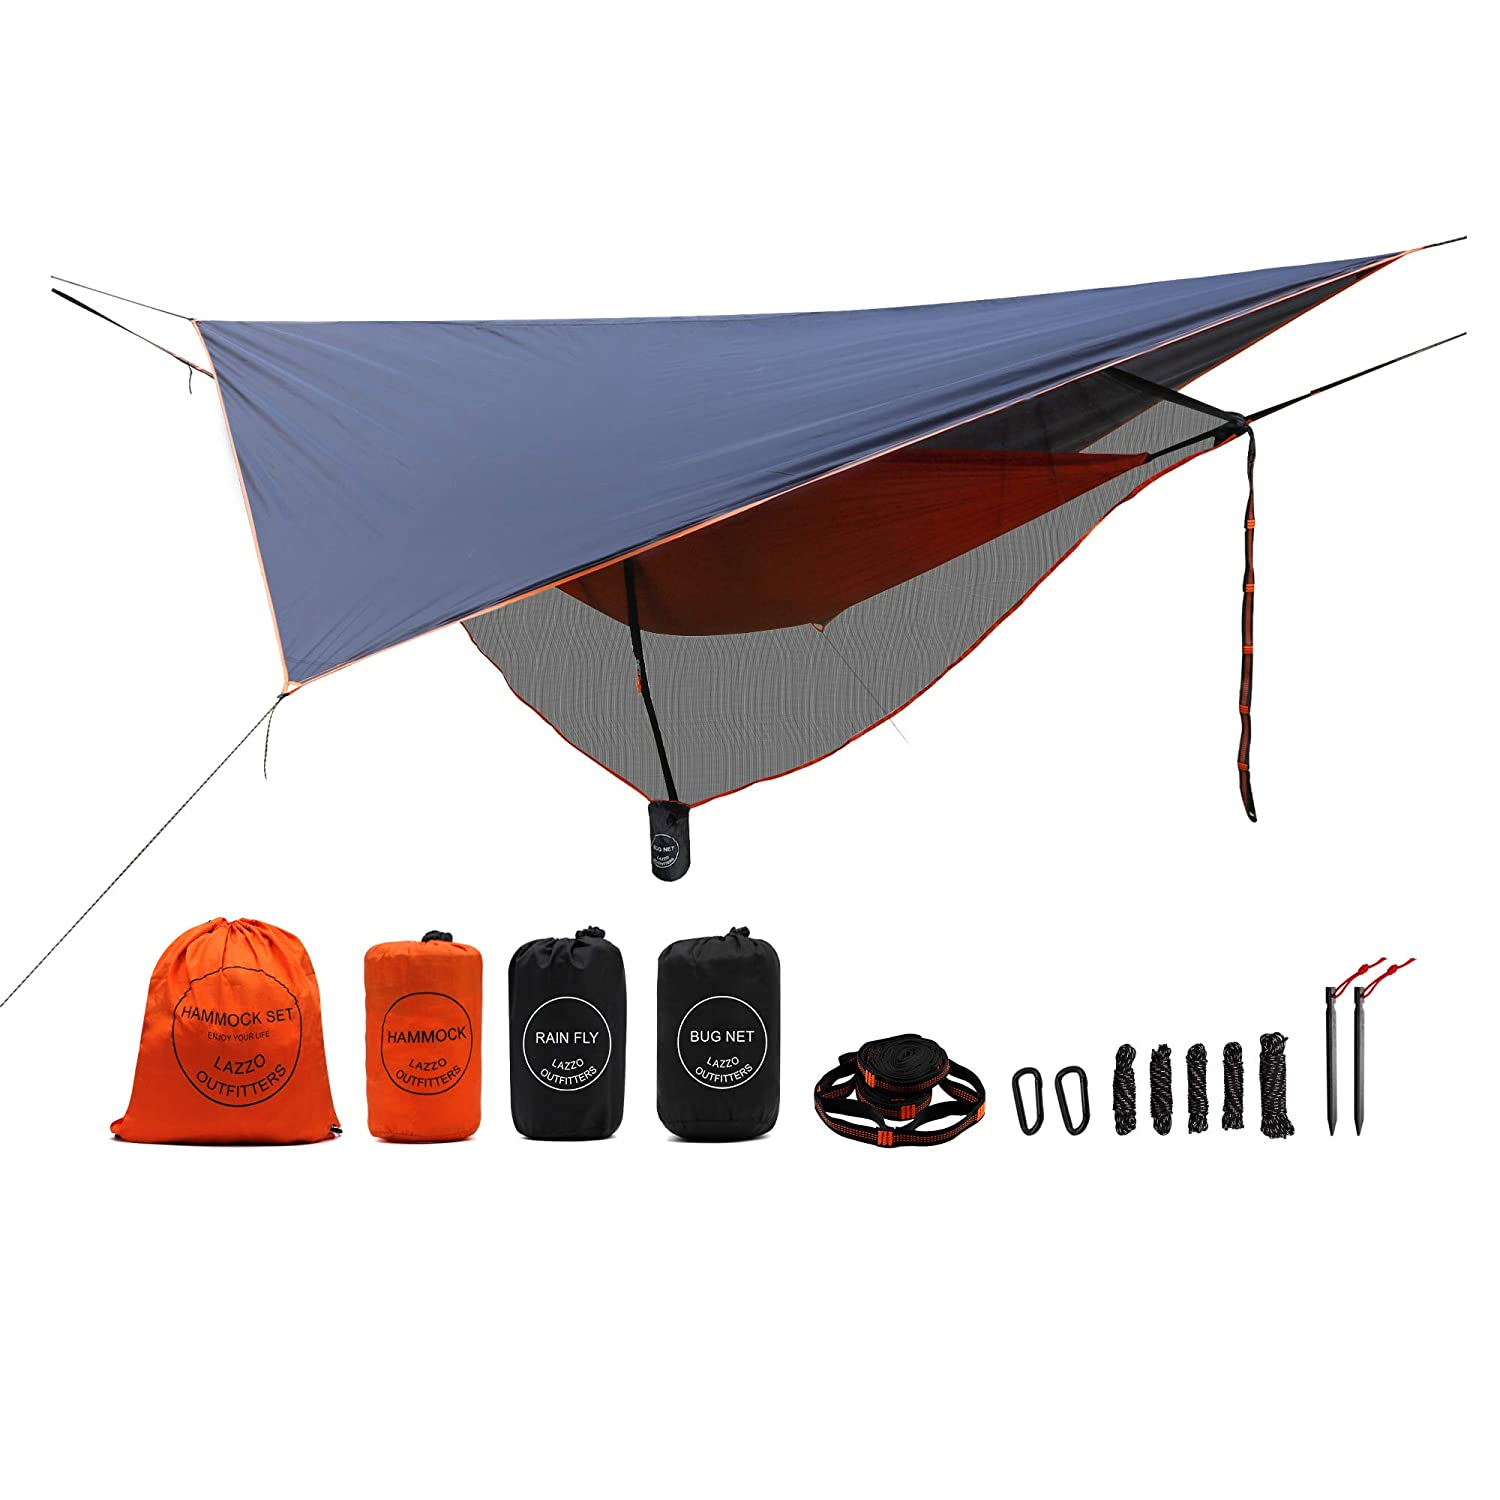 Camping Hammock Set with Single Hammock